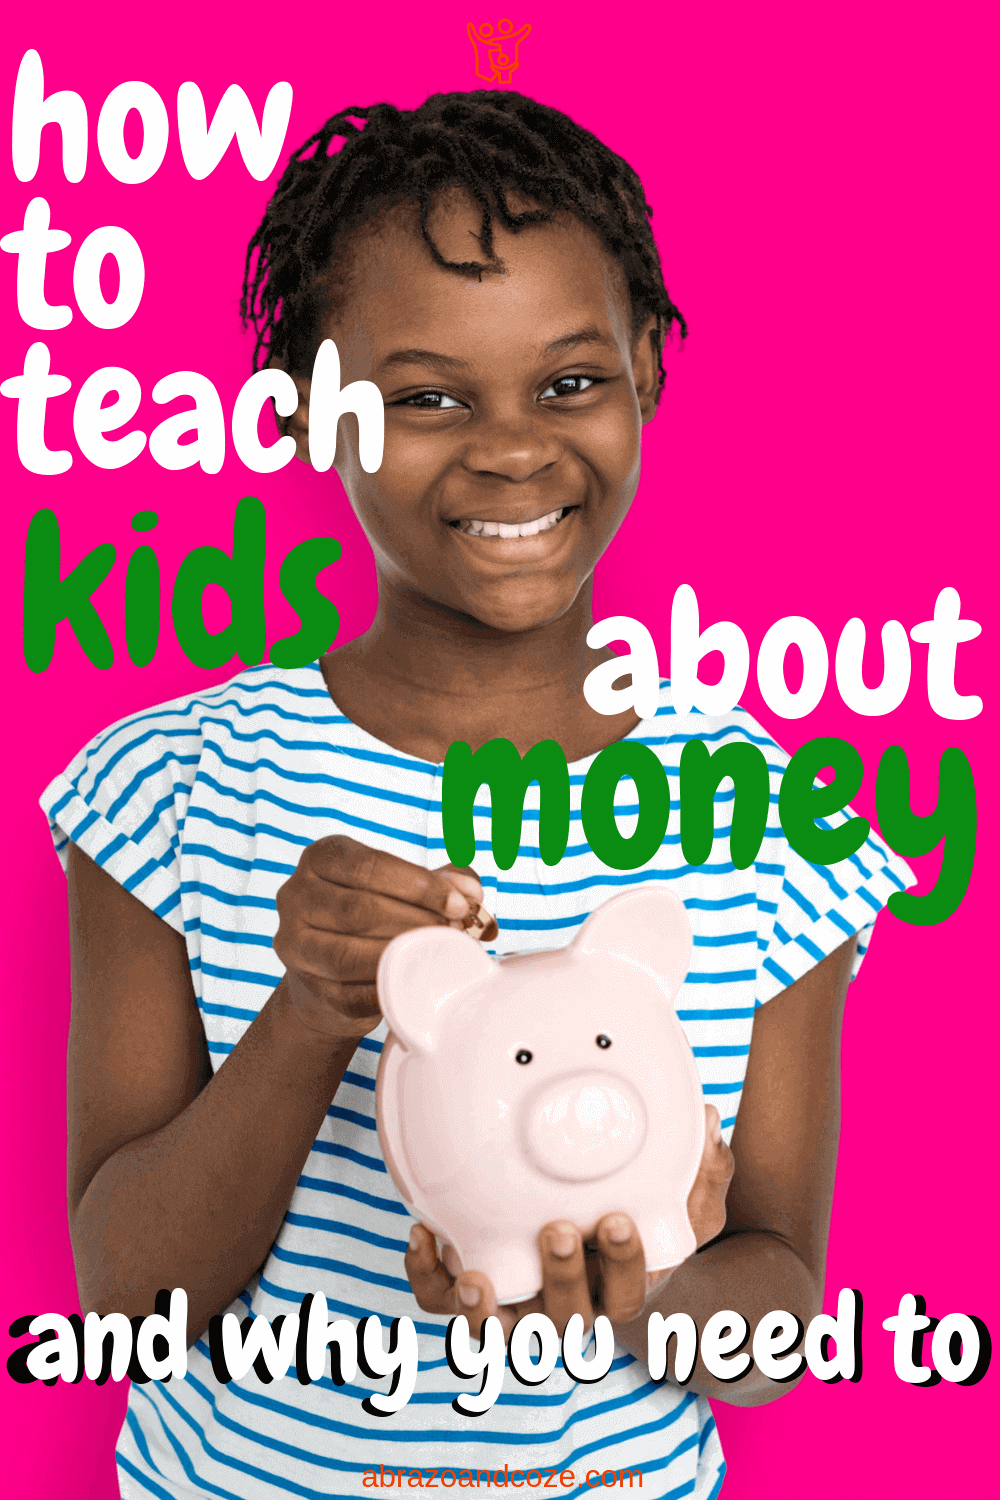 How to Teach Kids About Money: and why you need to. Have your kids happily saving and spending their money wisely, like the girl in this pic. Follow these easy tips to ensure they have the money skills they need to go out successfully into the world after high school.